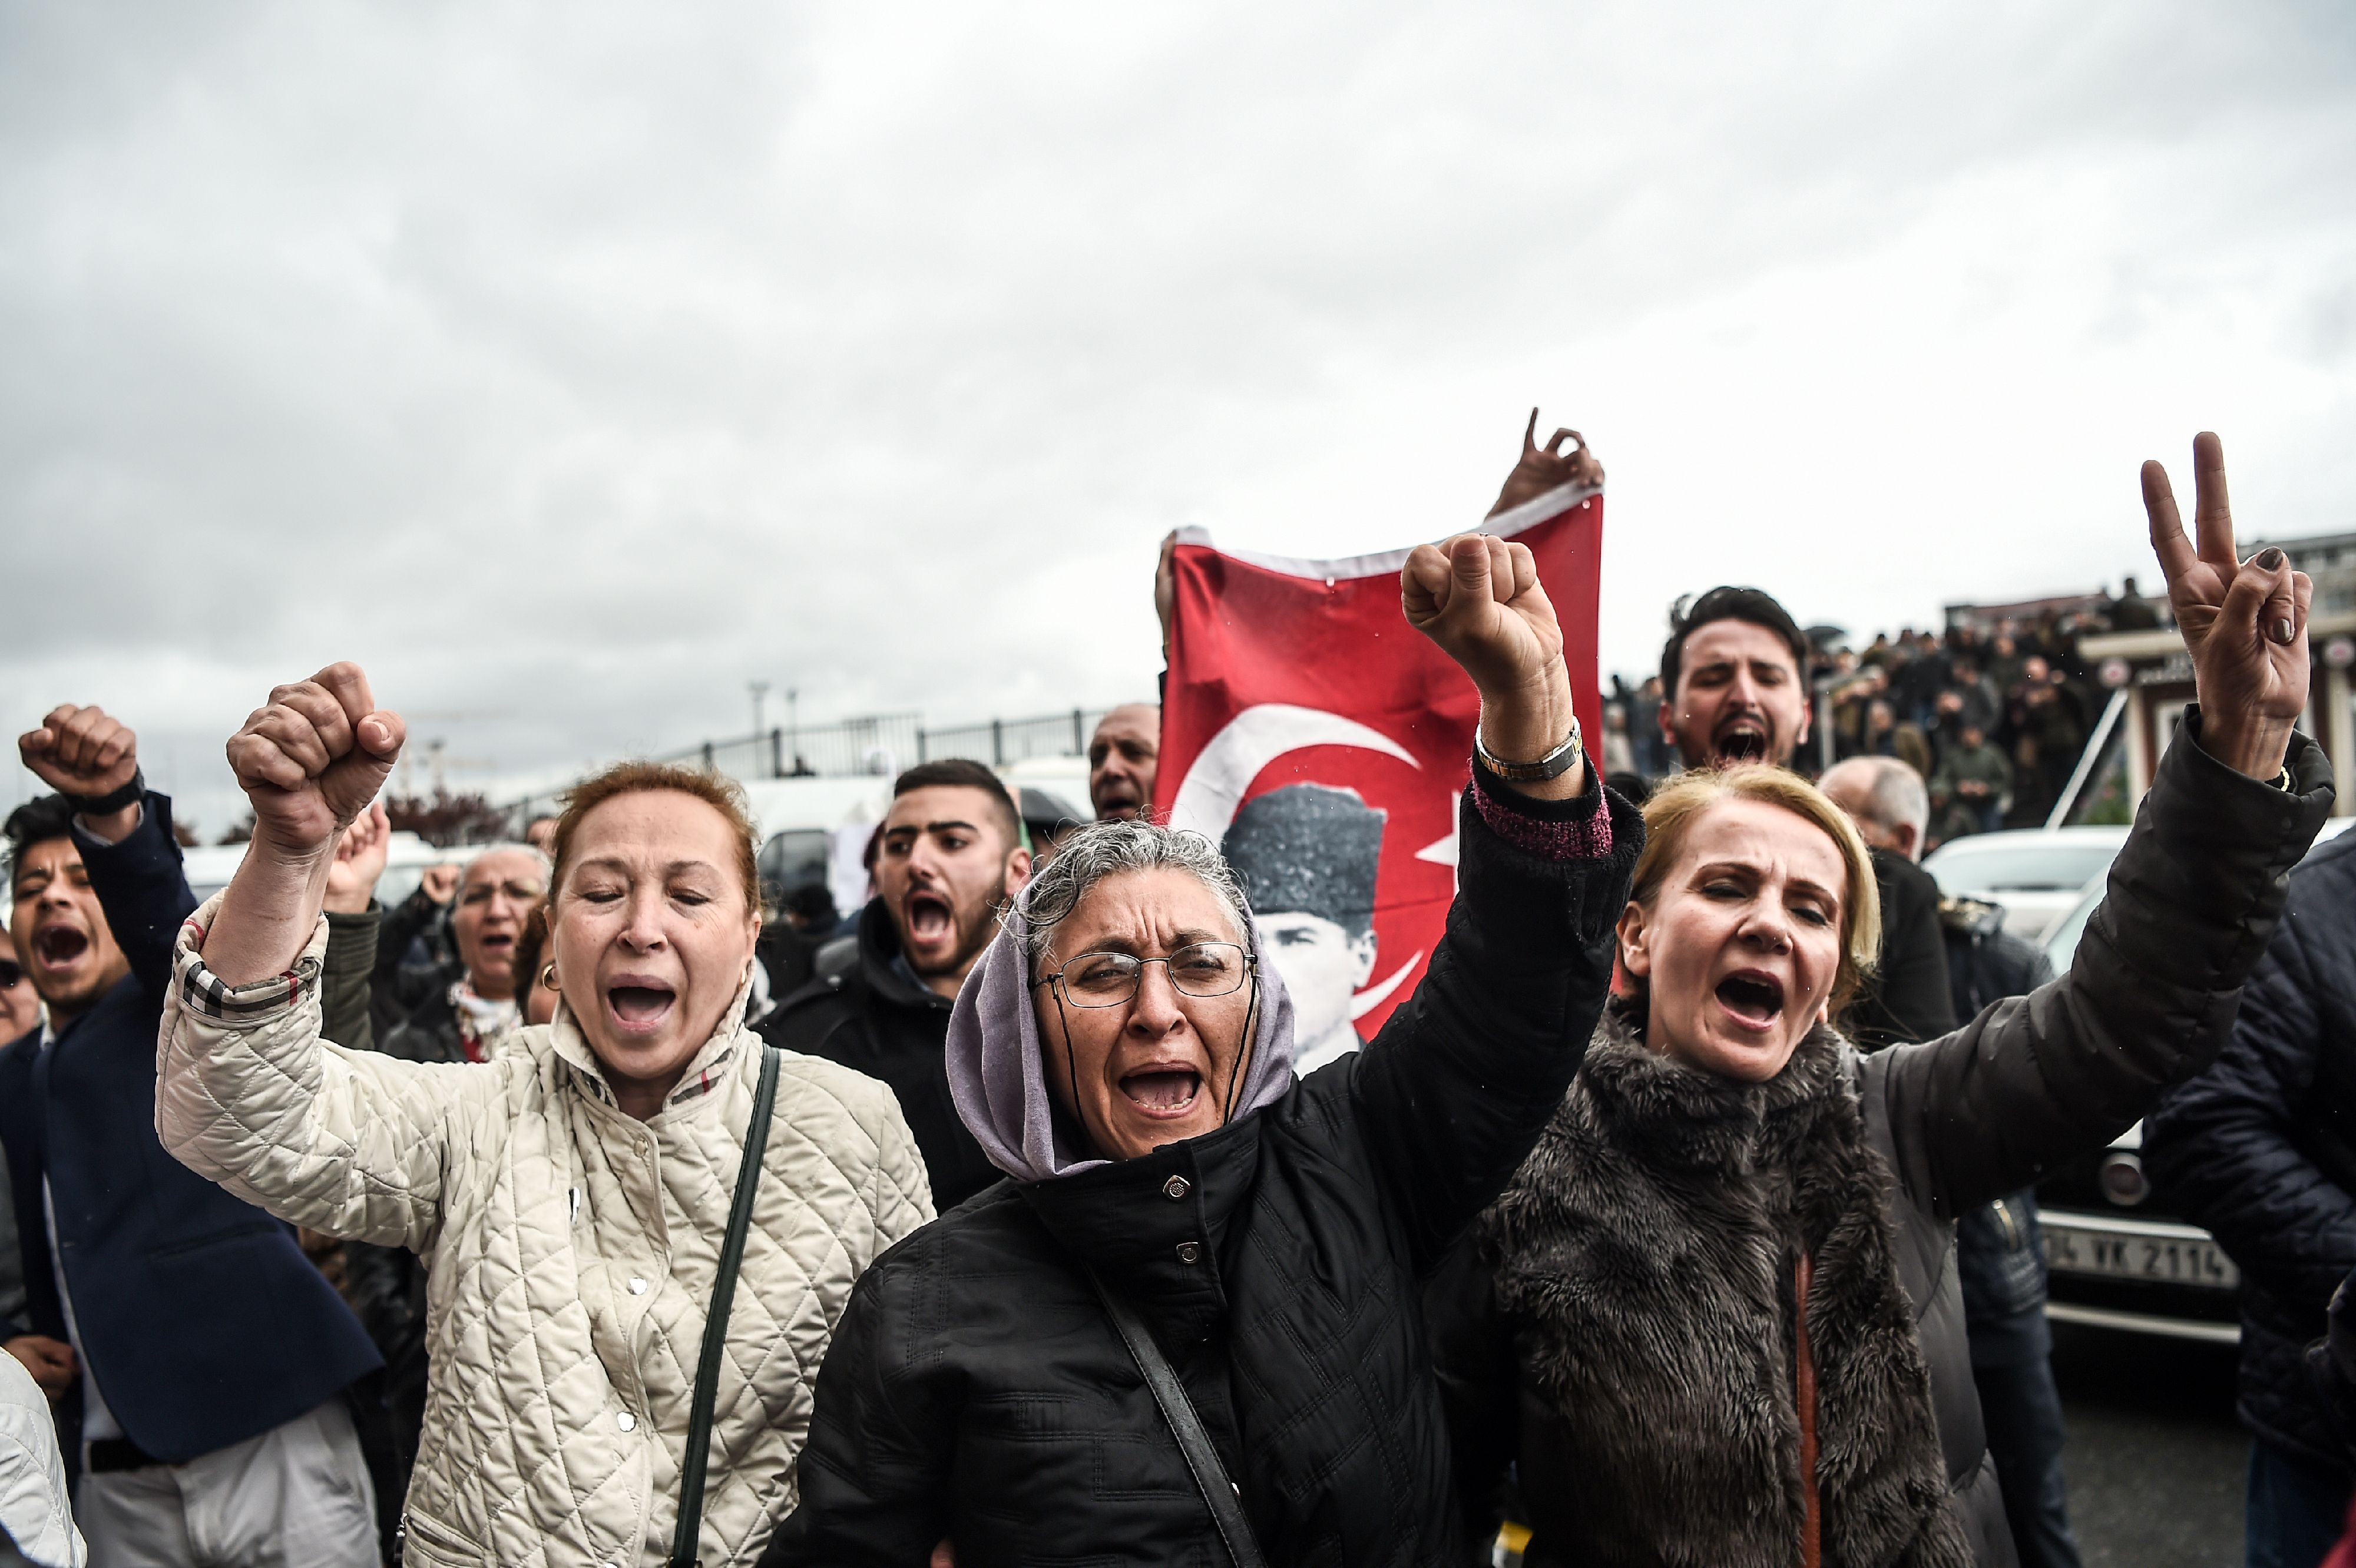 TURKEY-POLITICS-REFERENDUM-VOTE-RALLY